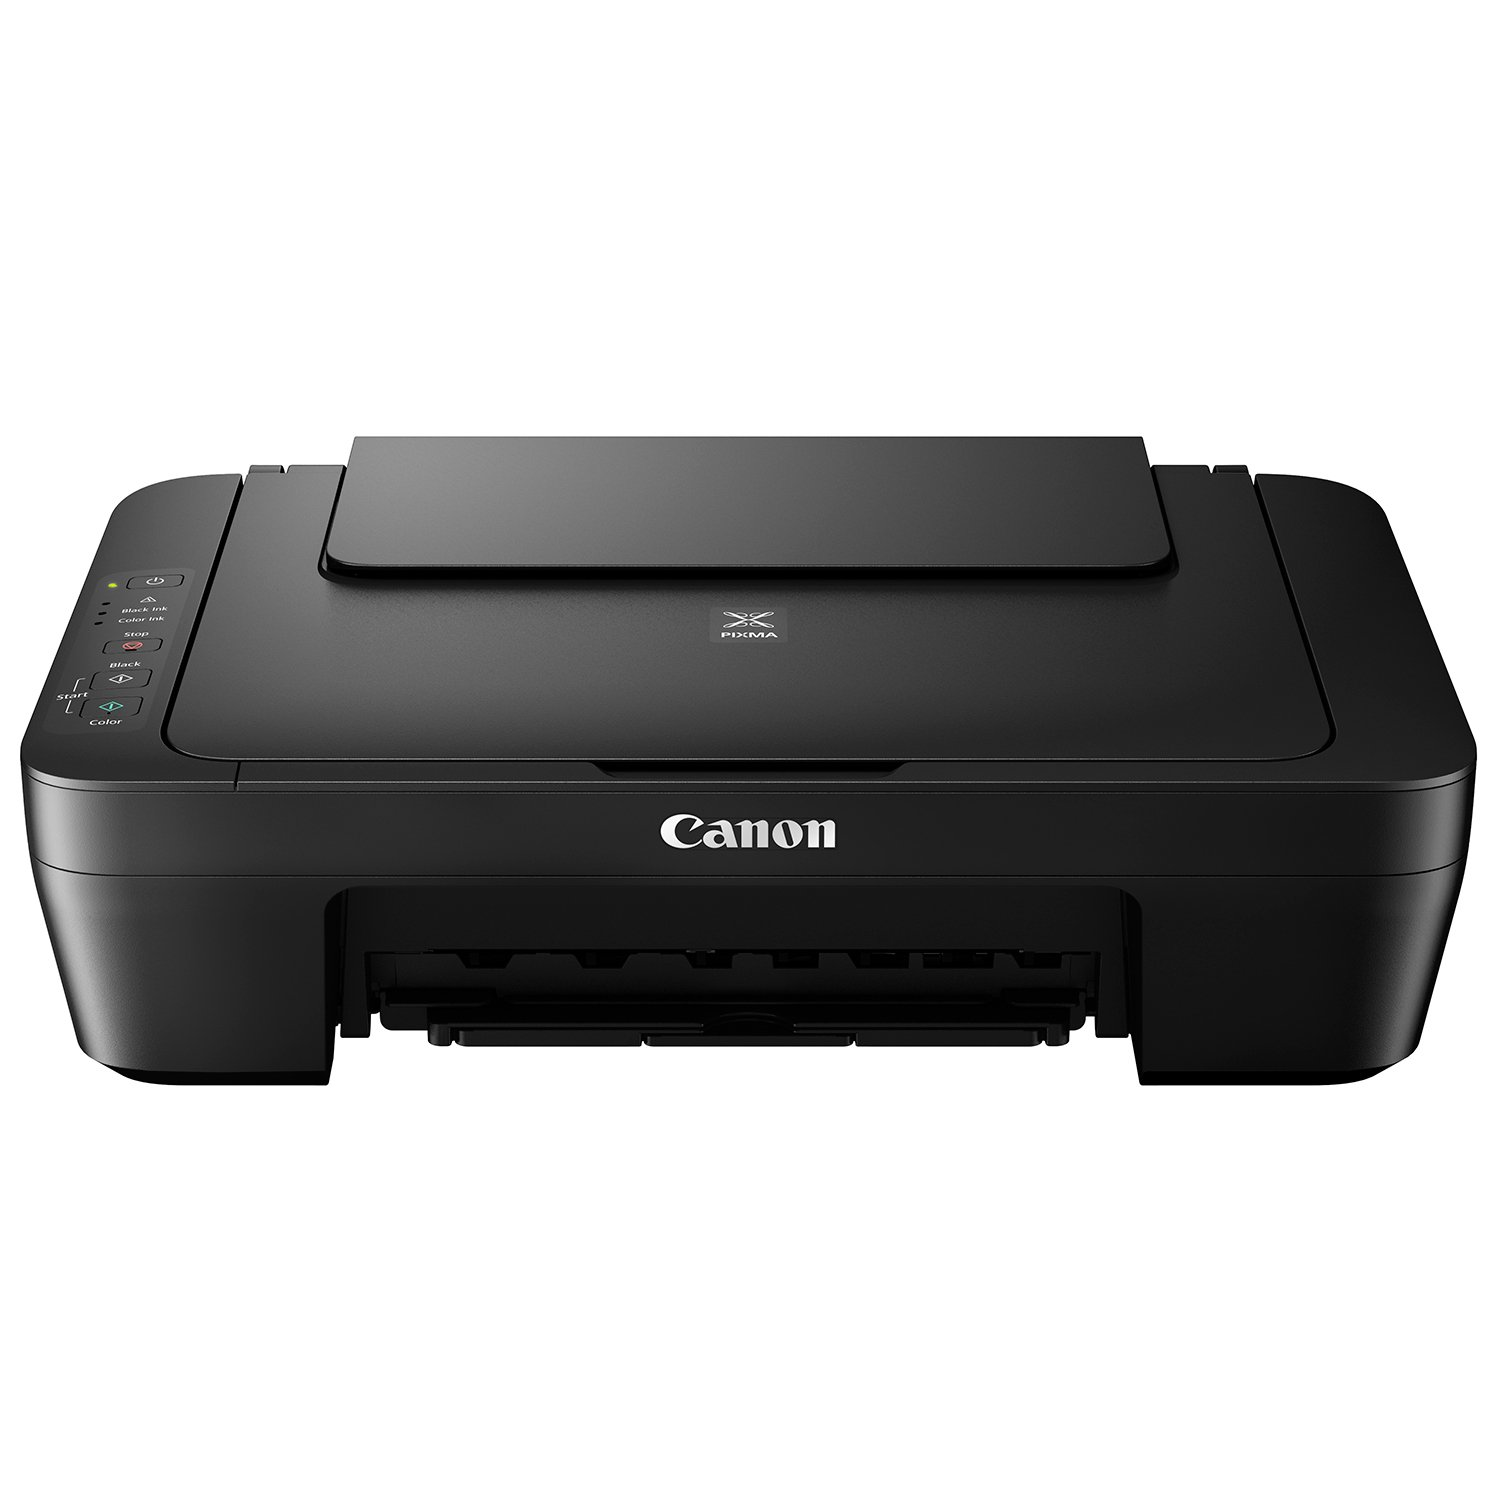 Canon Italien Pixma Mg2550s Multifunktionsgert Computer National Geographic Mc 2550 Medium Tote Zubehr